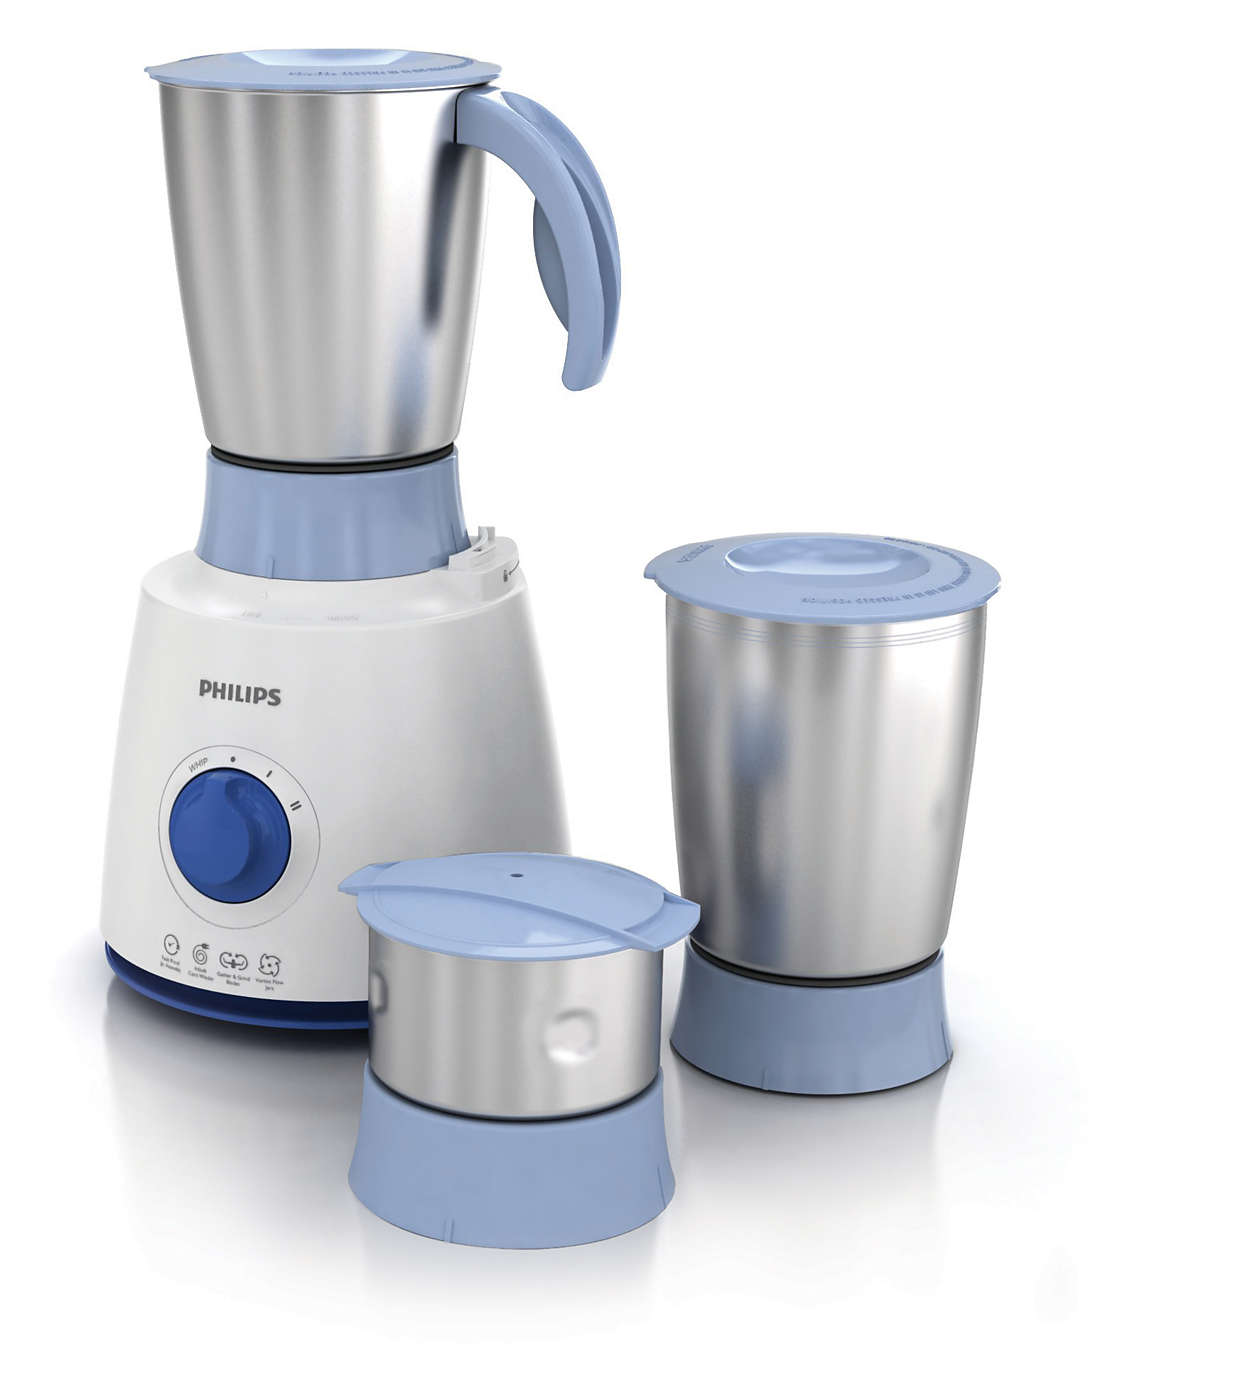 Mixer Grinder gives Tasty Meals, Every time